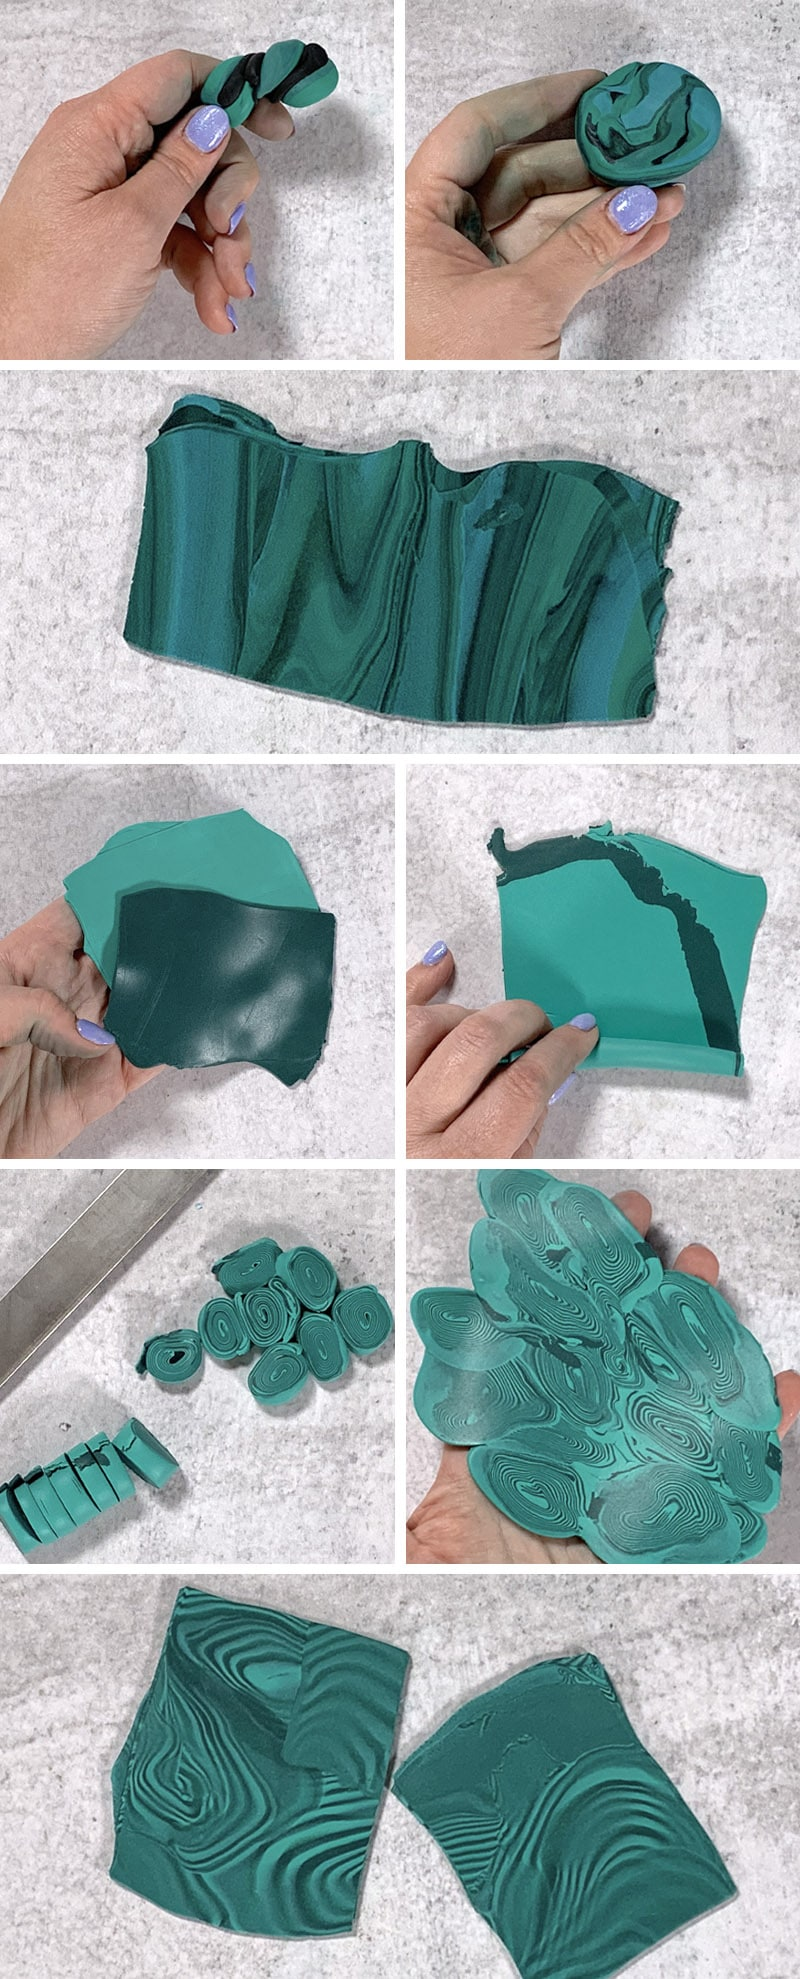 clay marbling step by step illustrations